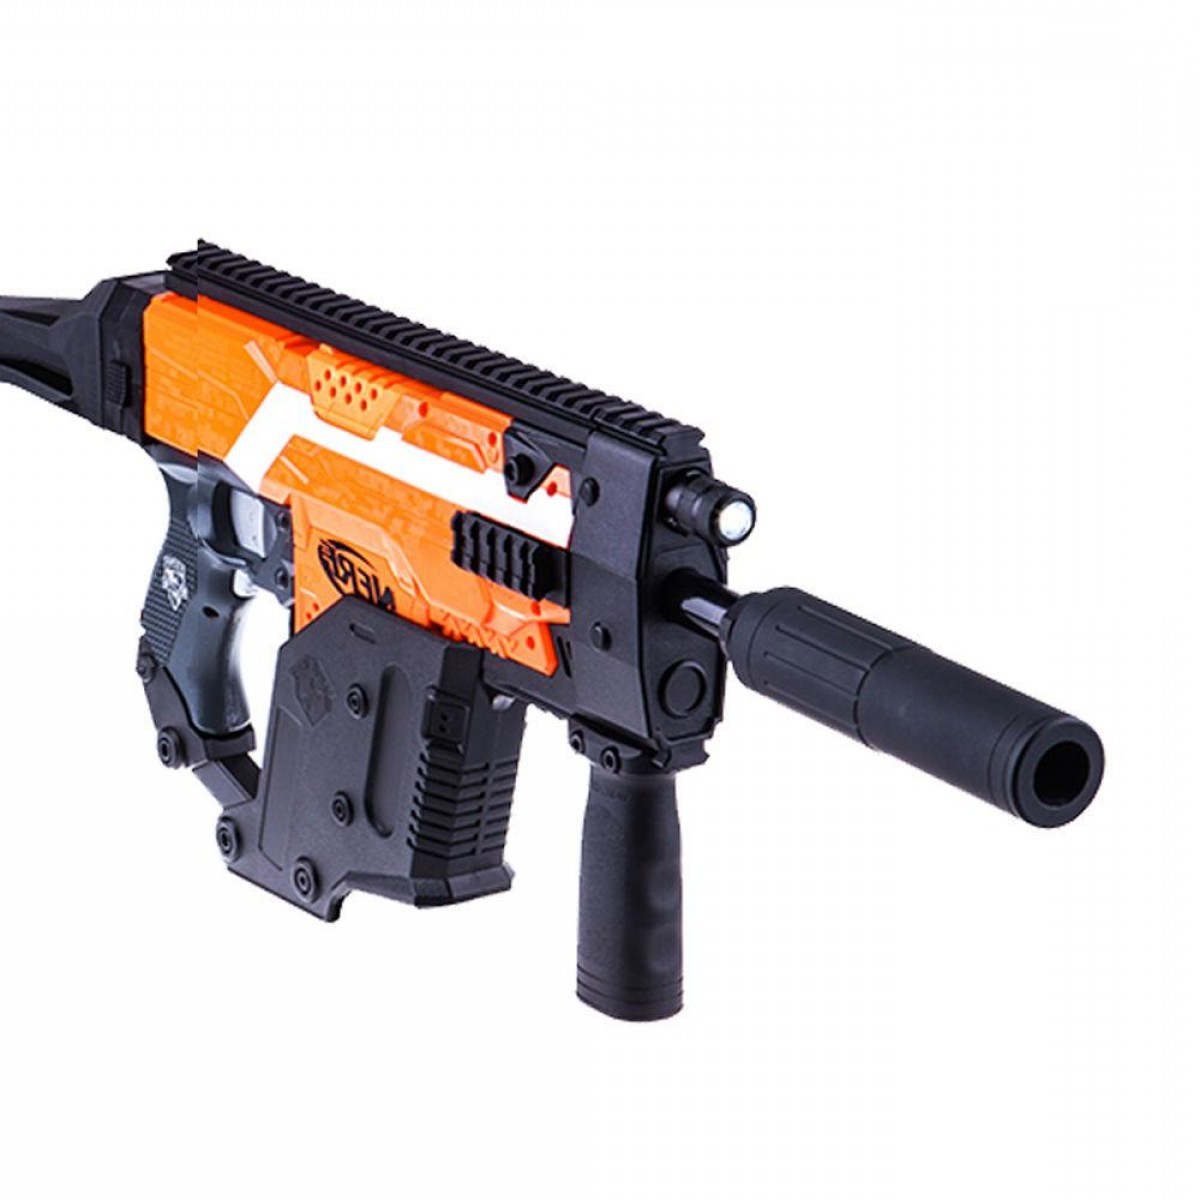 Vector Kriss Scope: Worker Mod Kriss Vector Picatinny Rail Mount Combo Items For Nerf Stryfe Toy